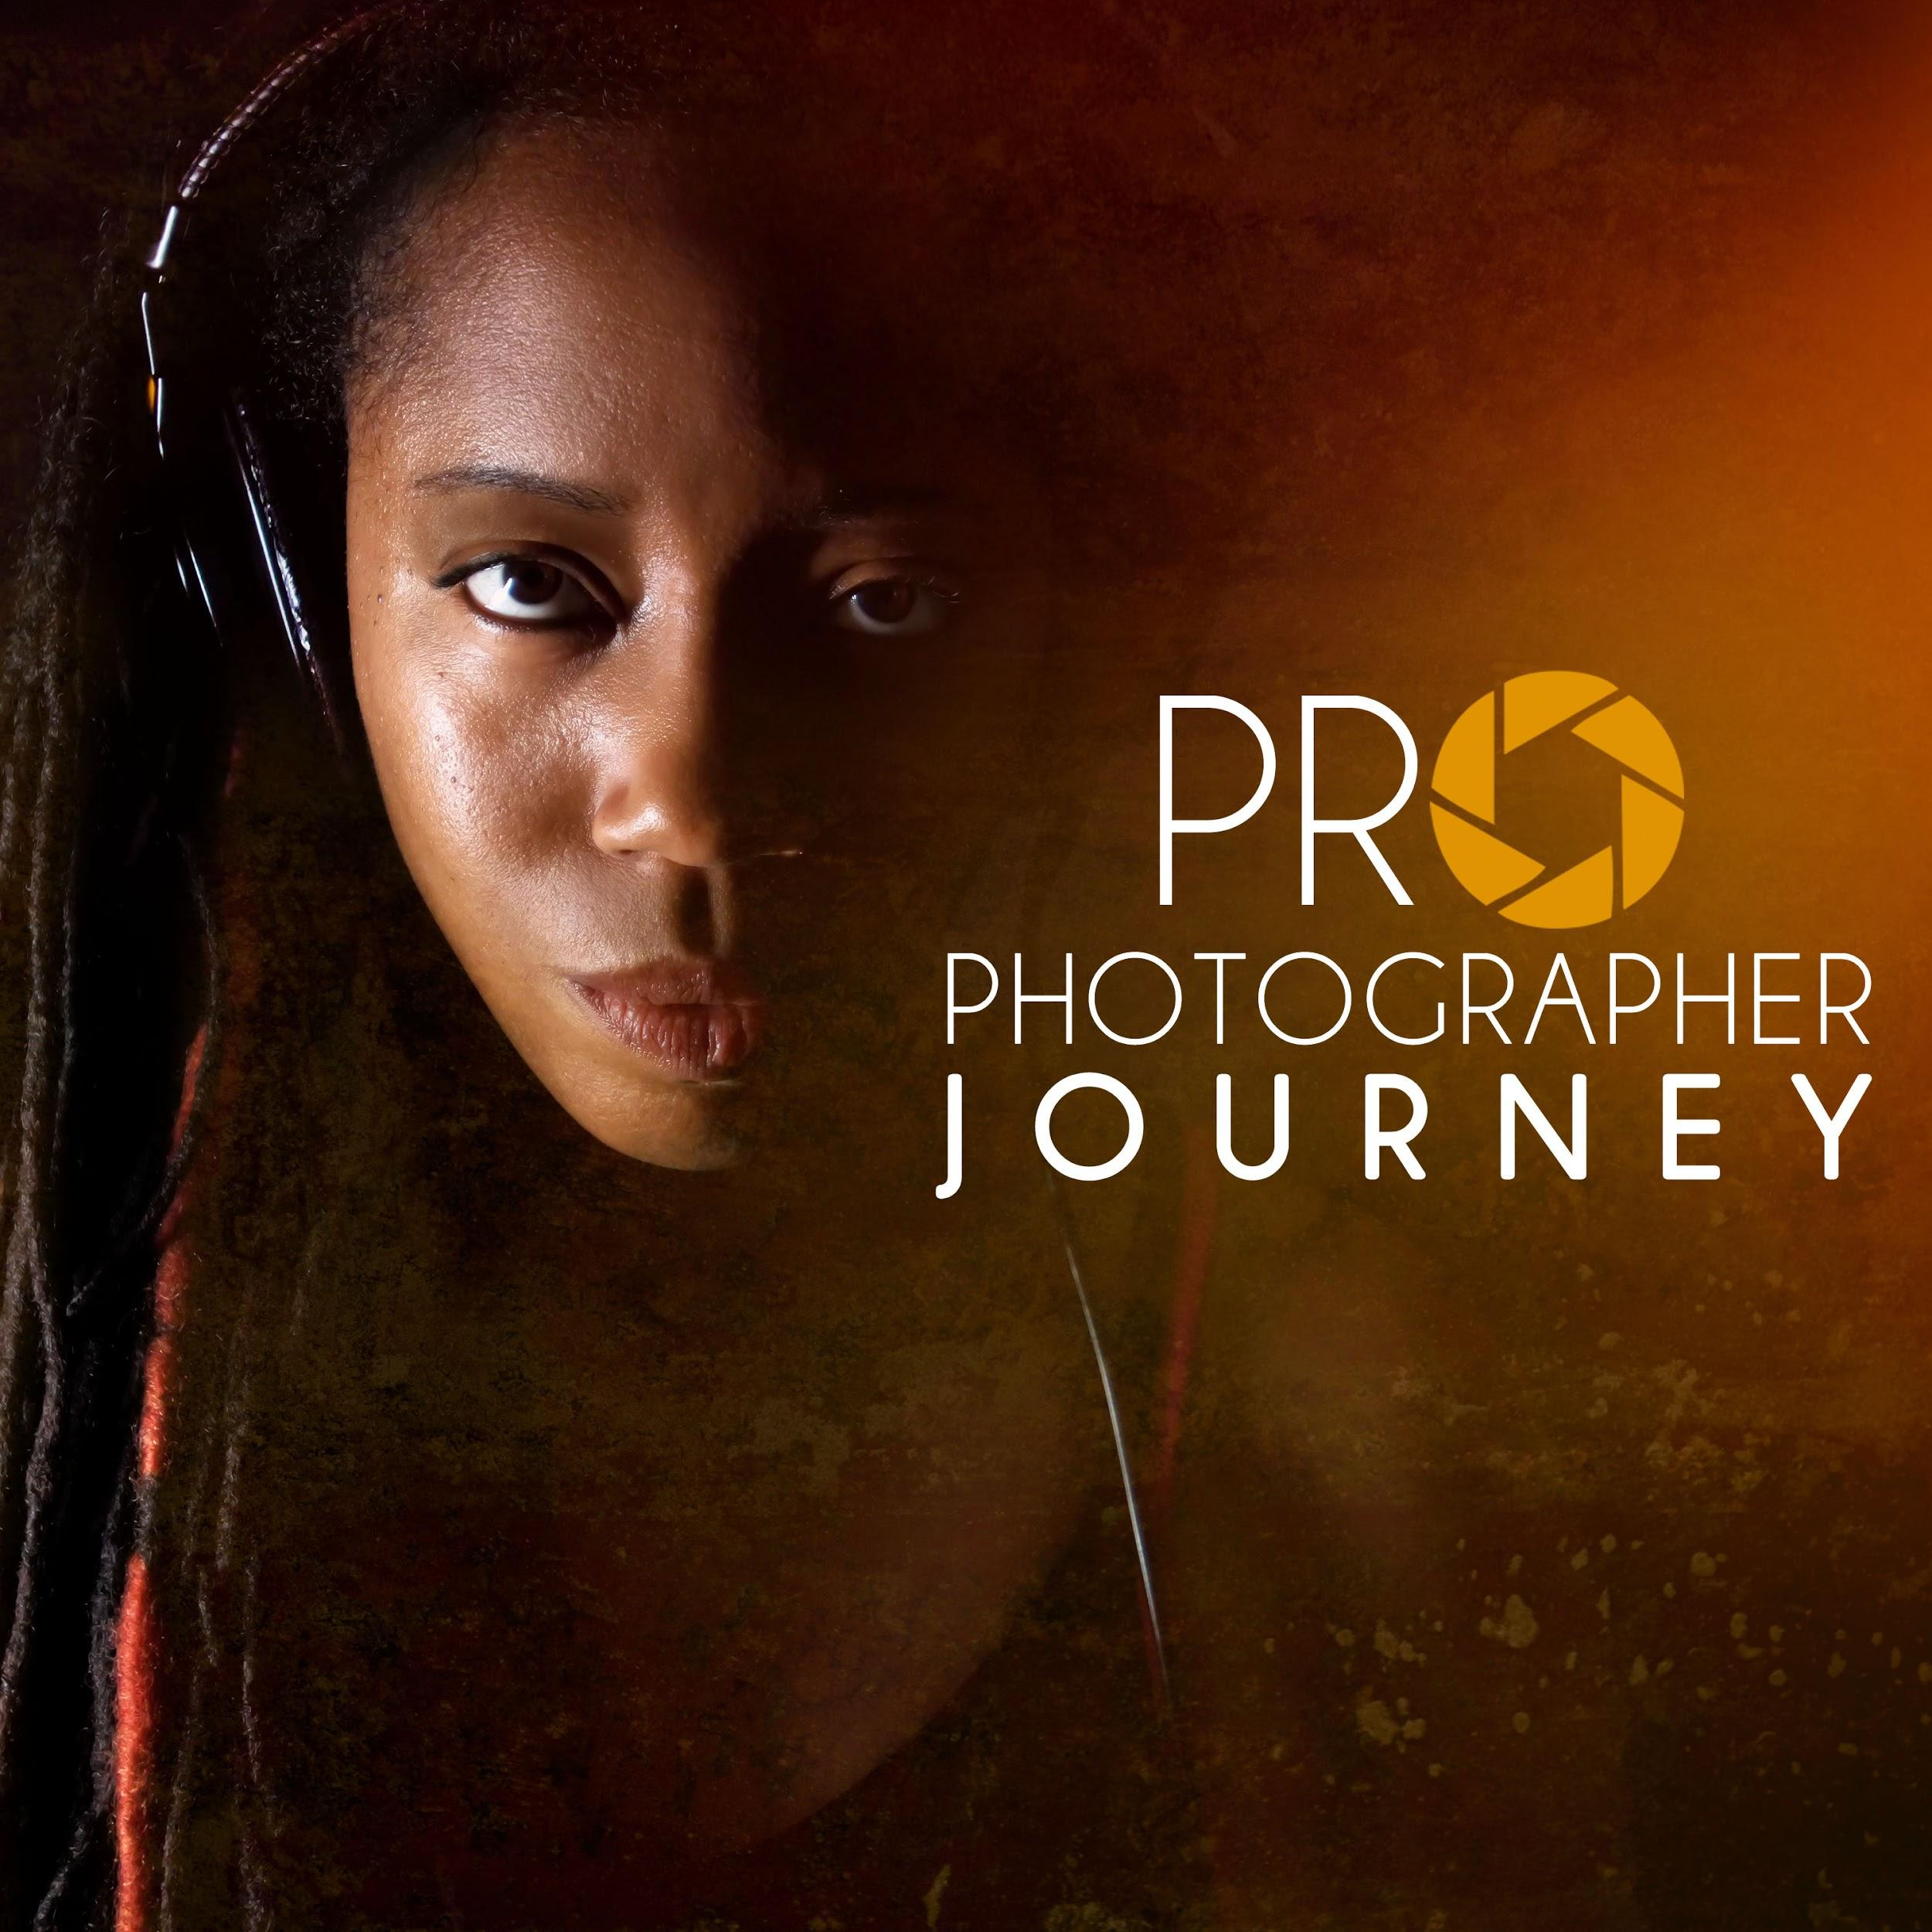 Pro Photographer Journey Podcast Logo